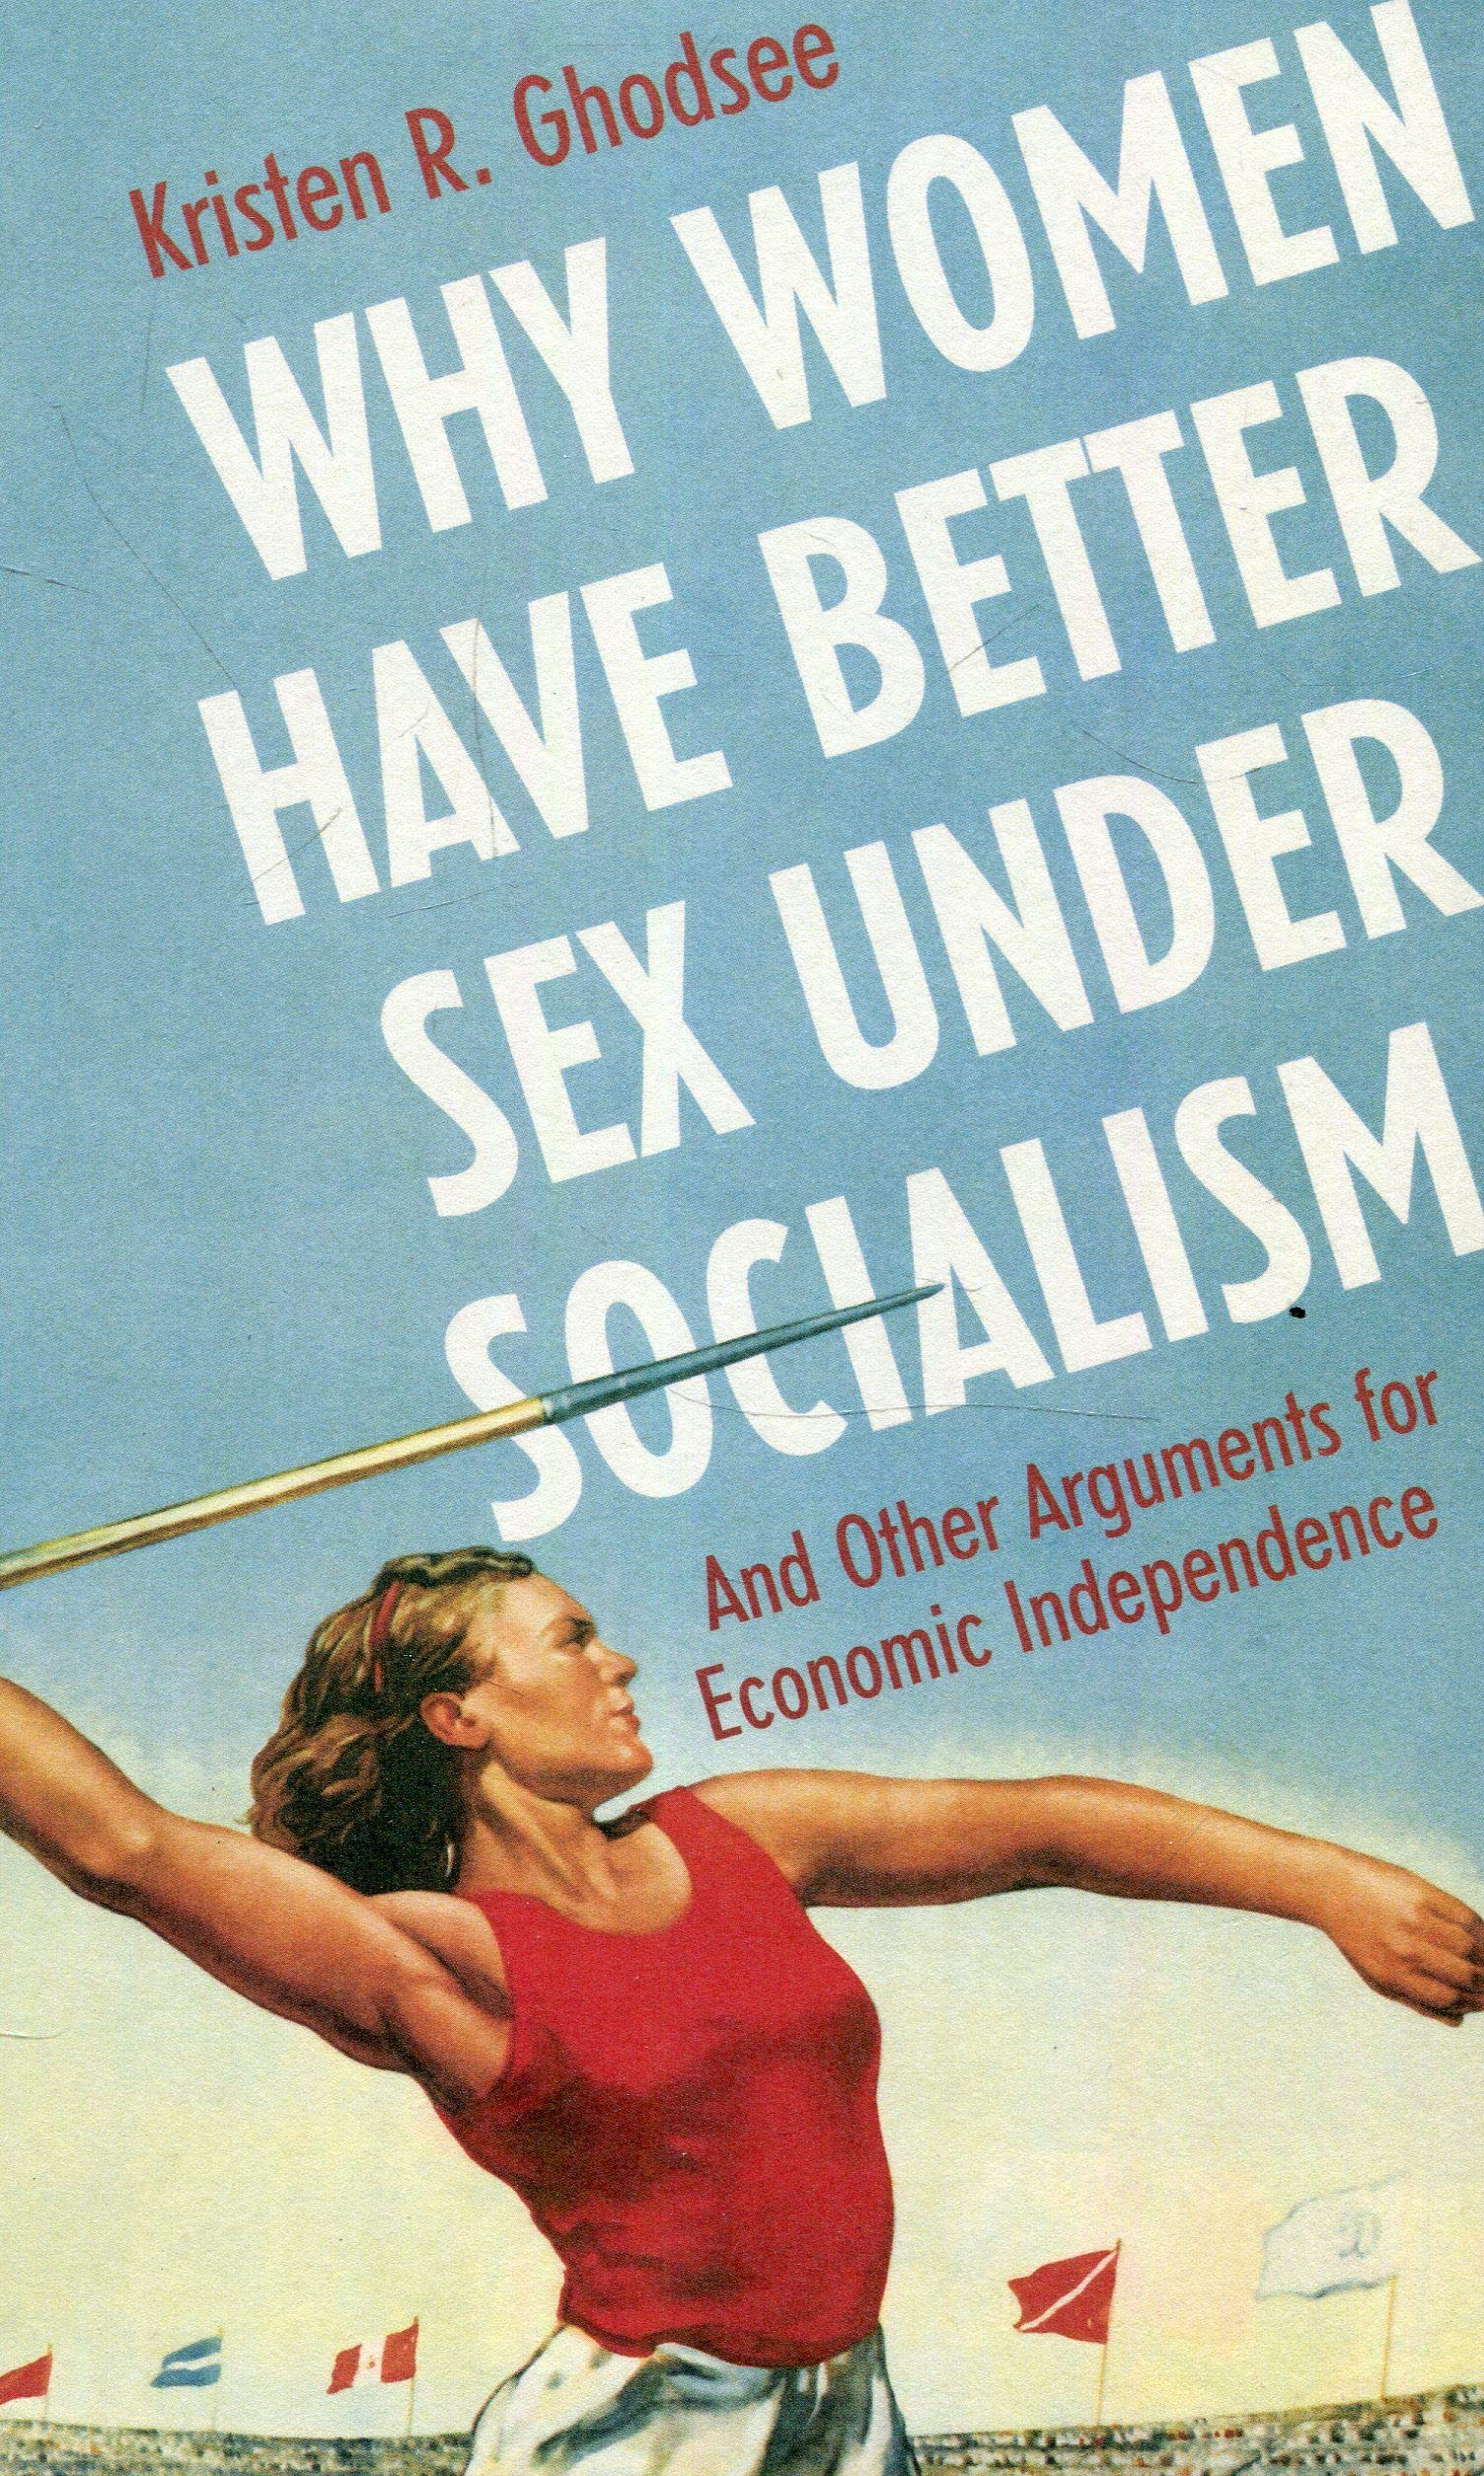 Why Women Have Better Sex Under Socialism thumbnail